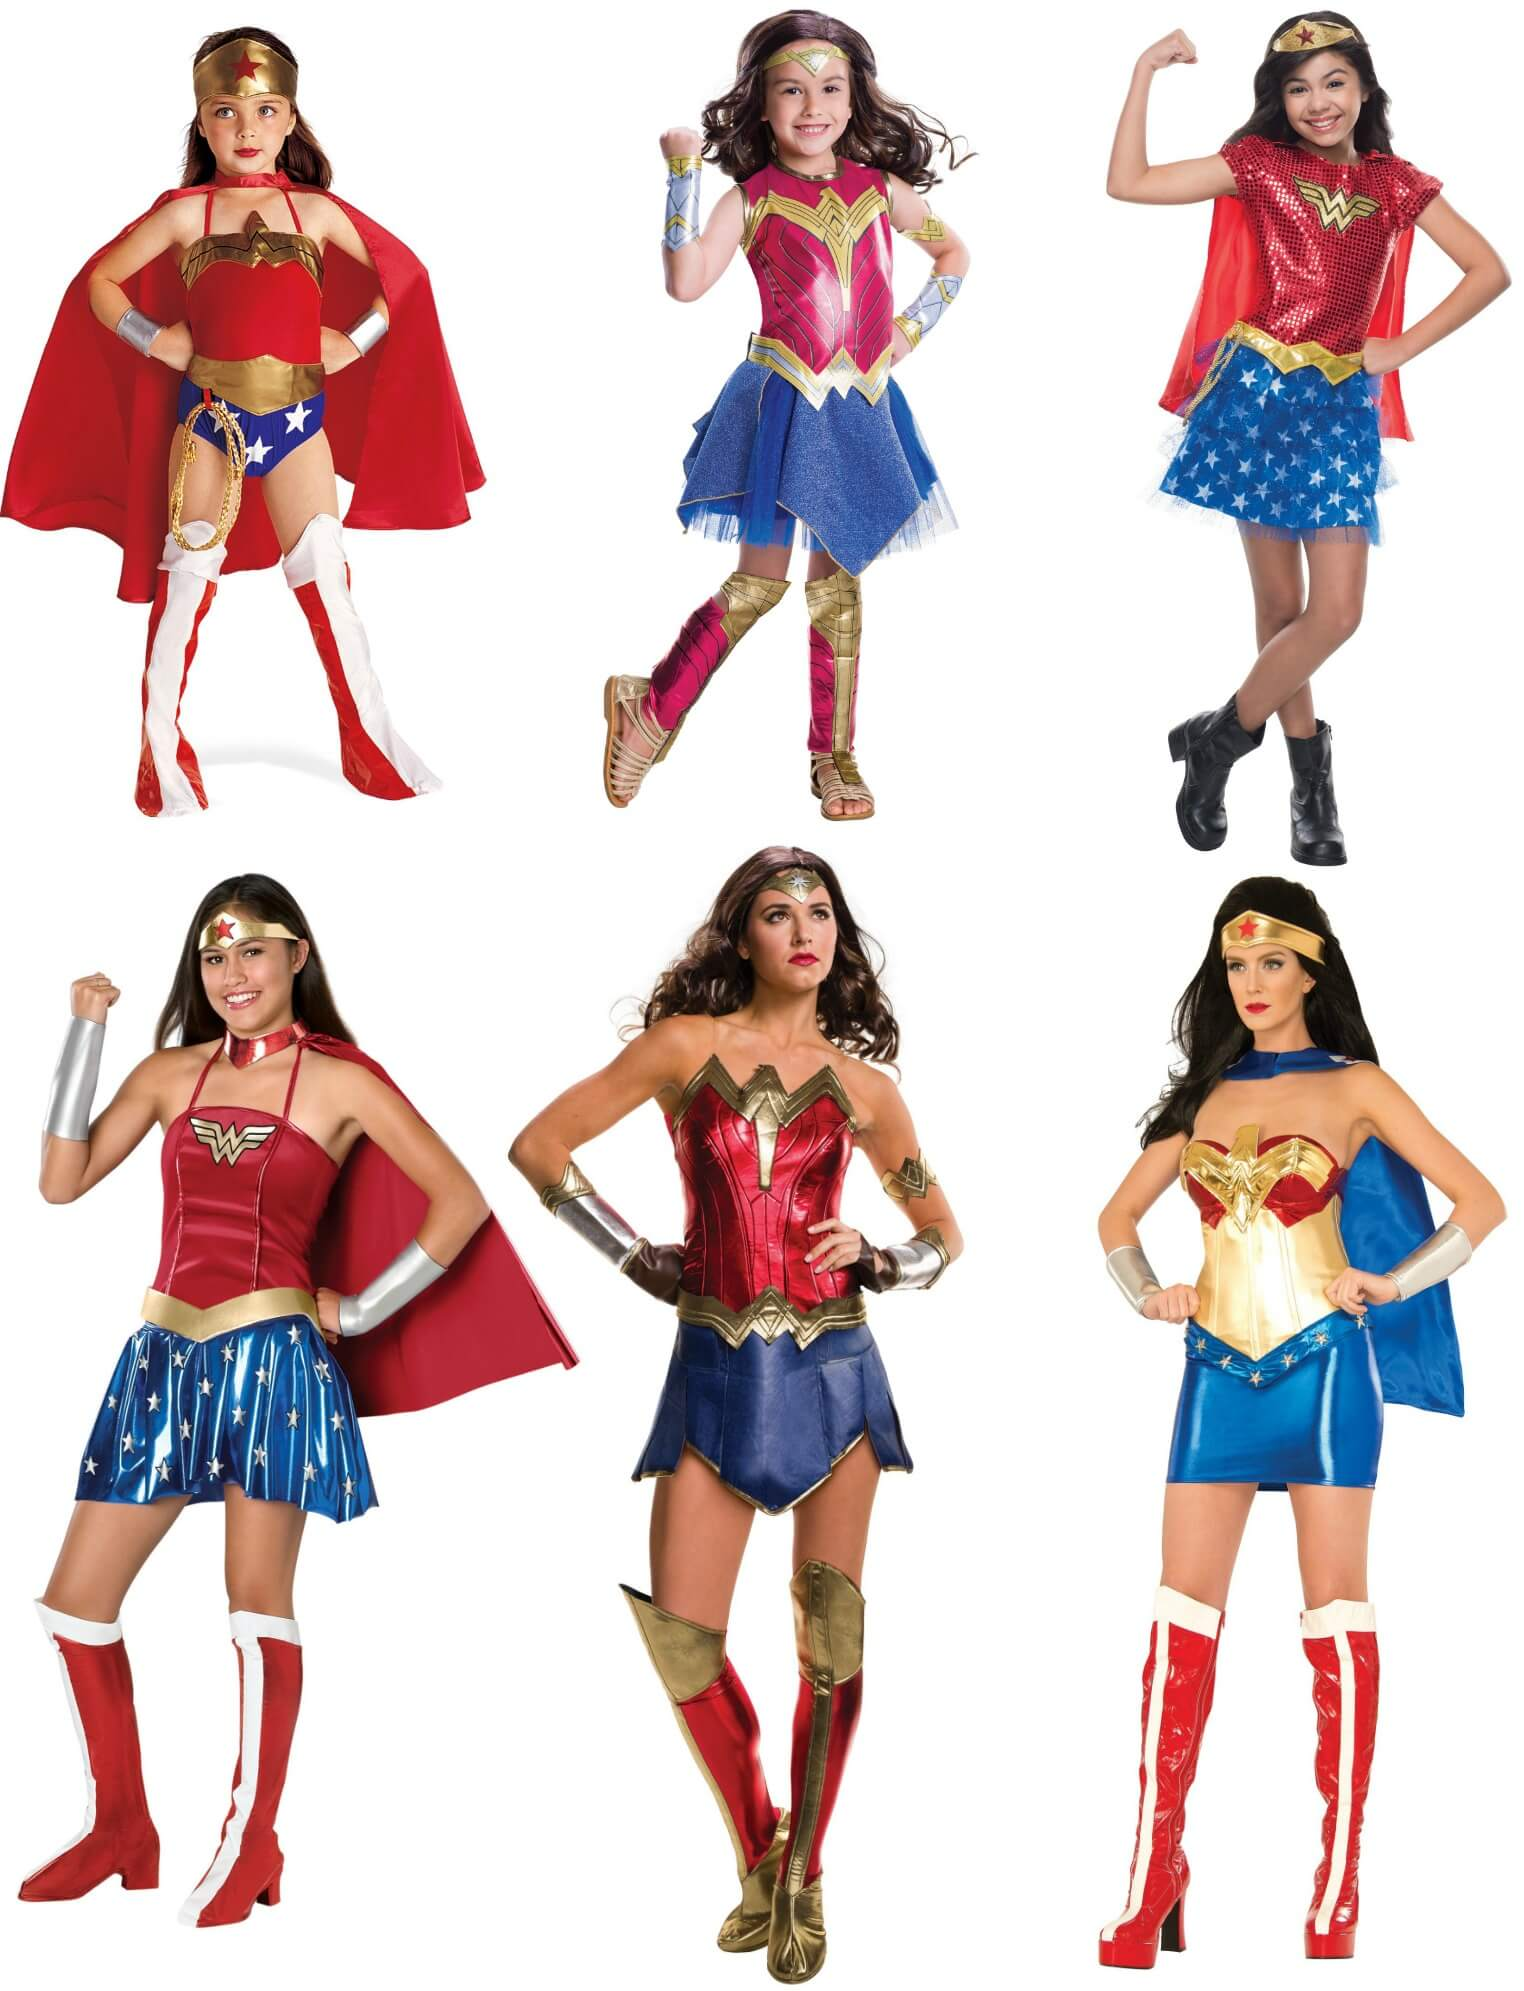 All ages Wonder Woman costumes